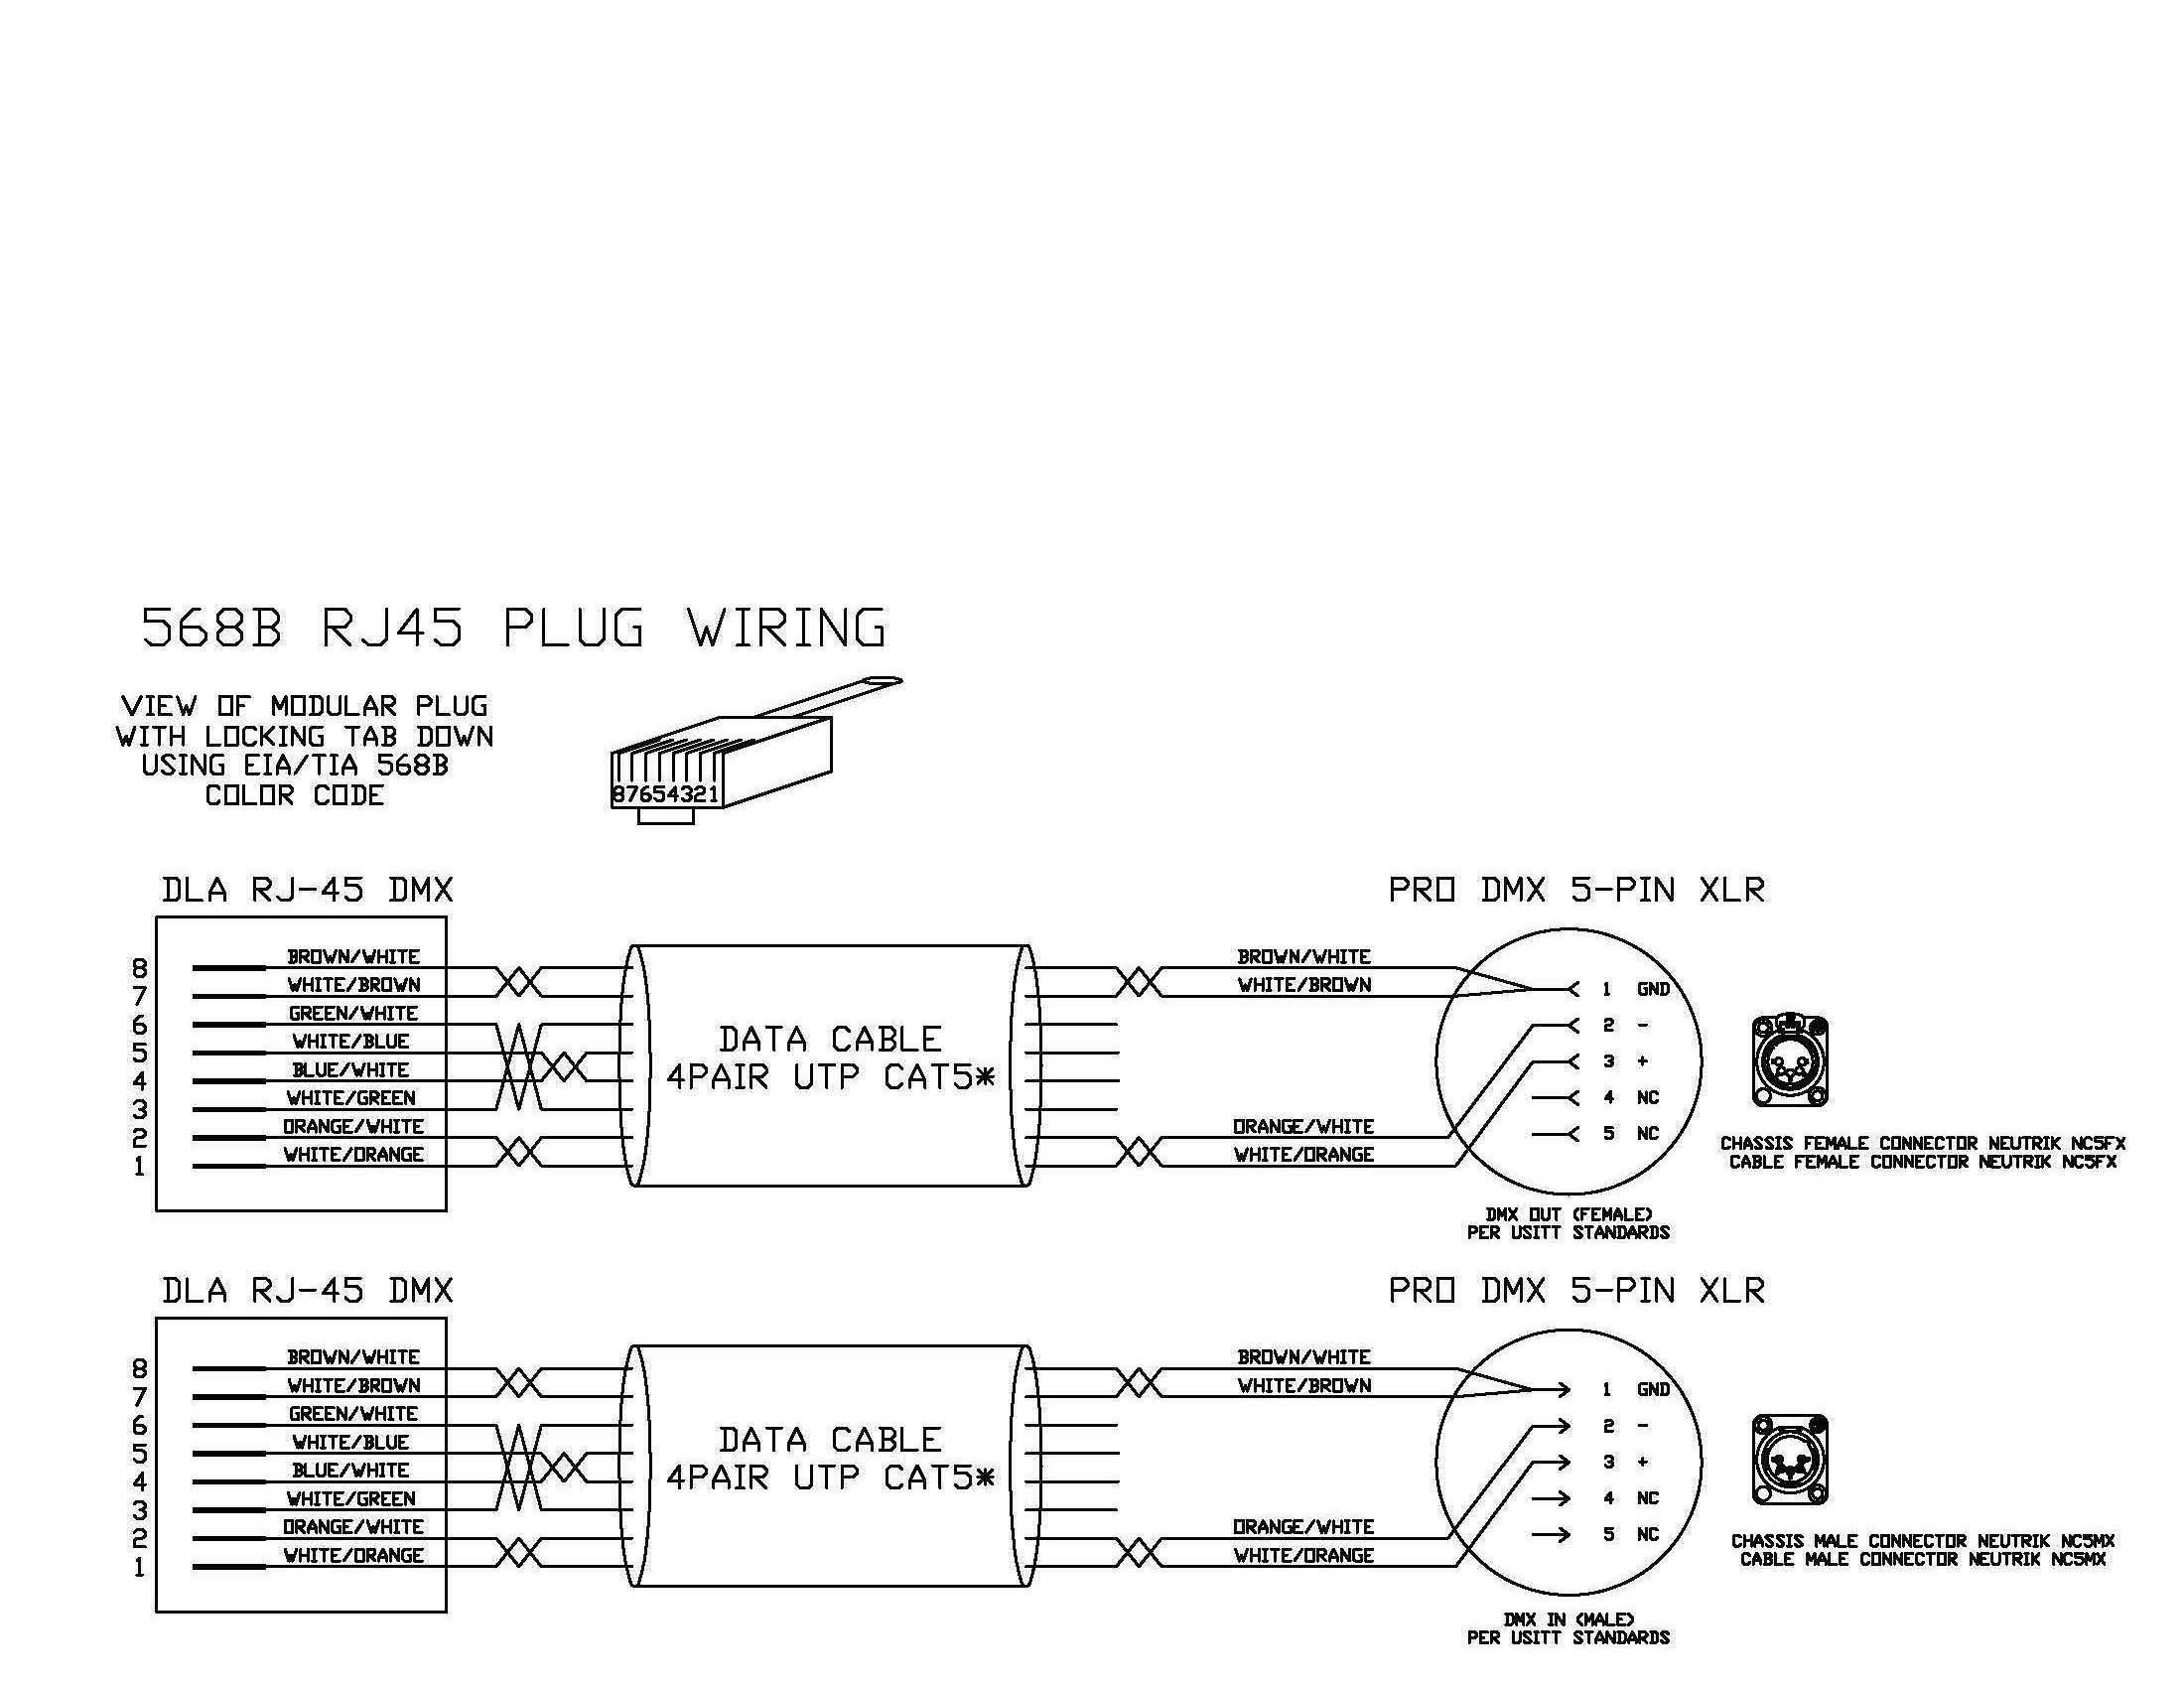 e975ddb6a839e630c21b81db05ca4fa6 xlr to rj45 wiring diagram xlr electrical wiring diagrams xlr wiring color codes at metegol.co